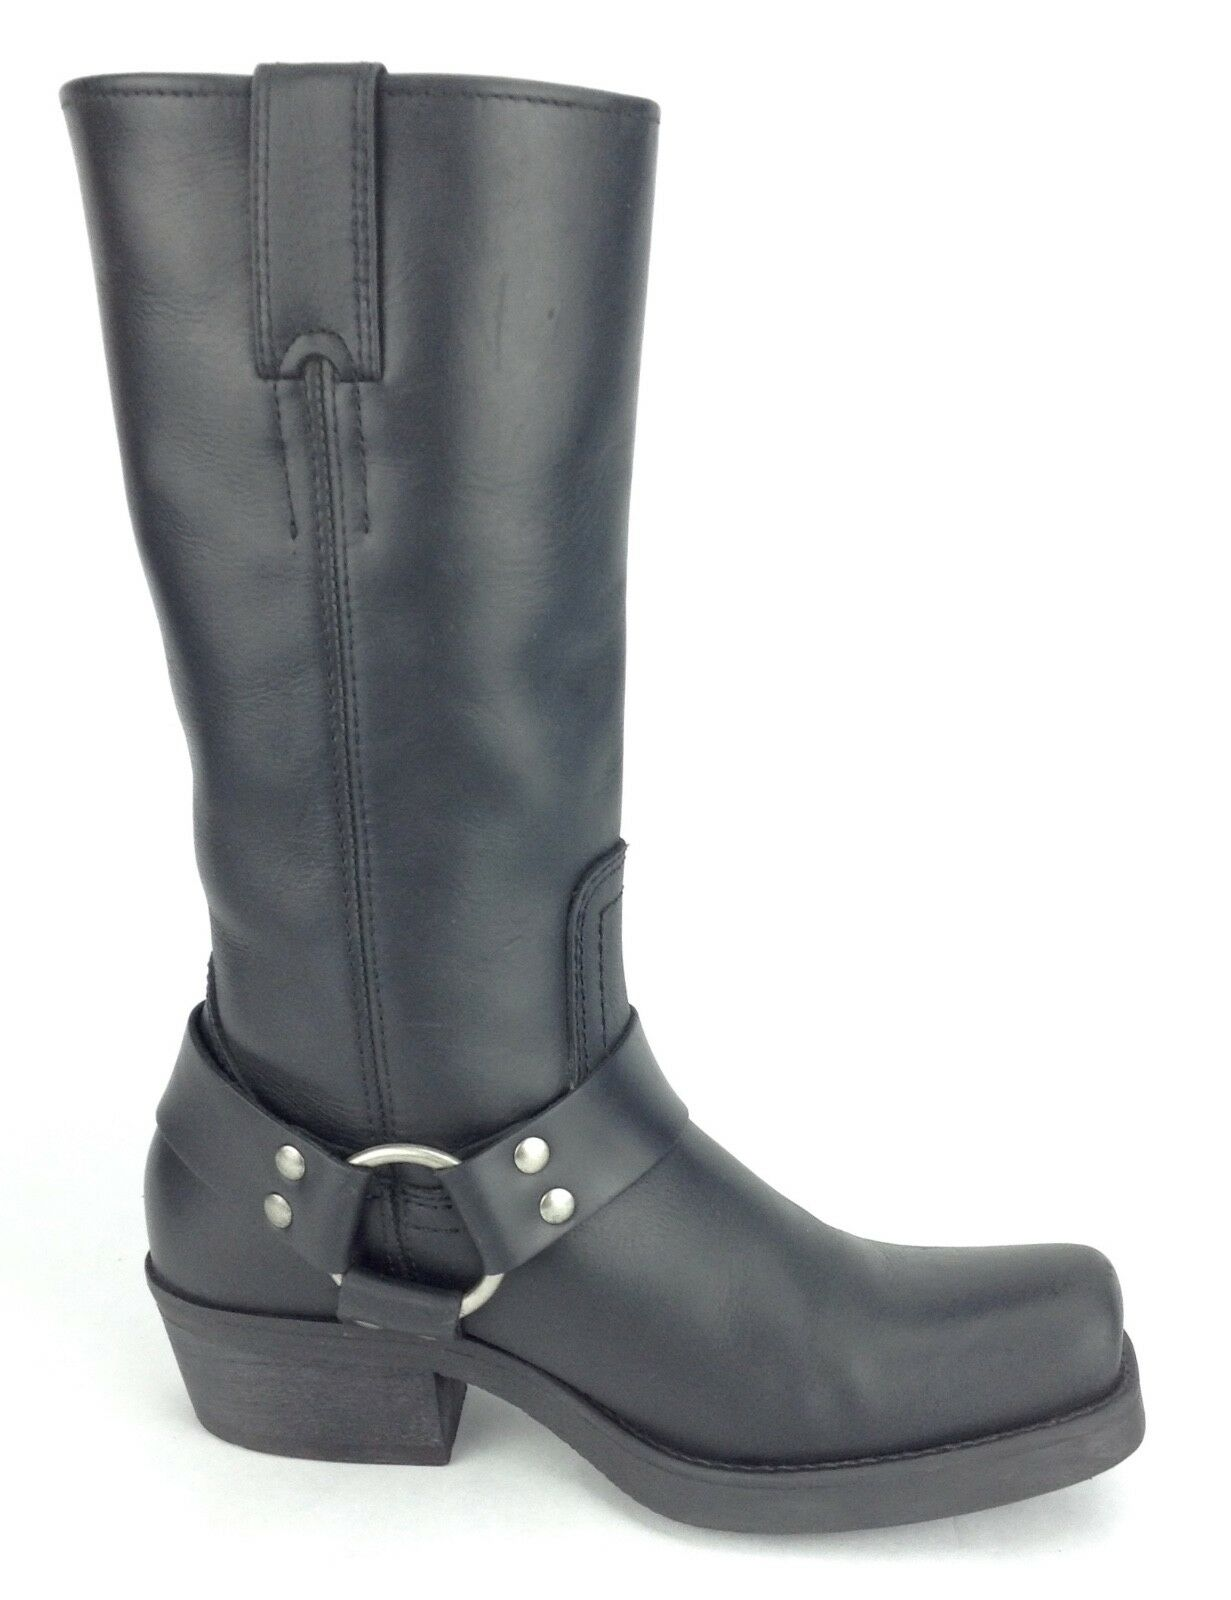 BP Motorcycle Boots Hightail Black Leather Harness Square Toe Women's 6.5